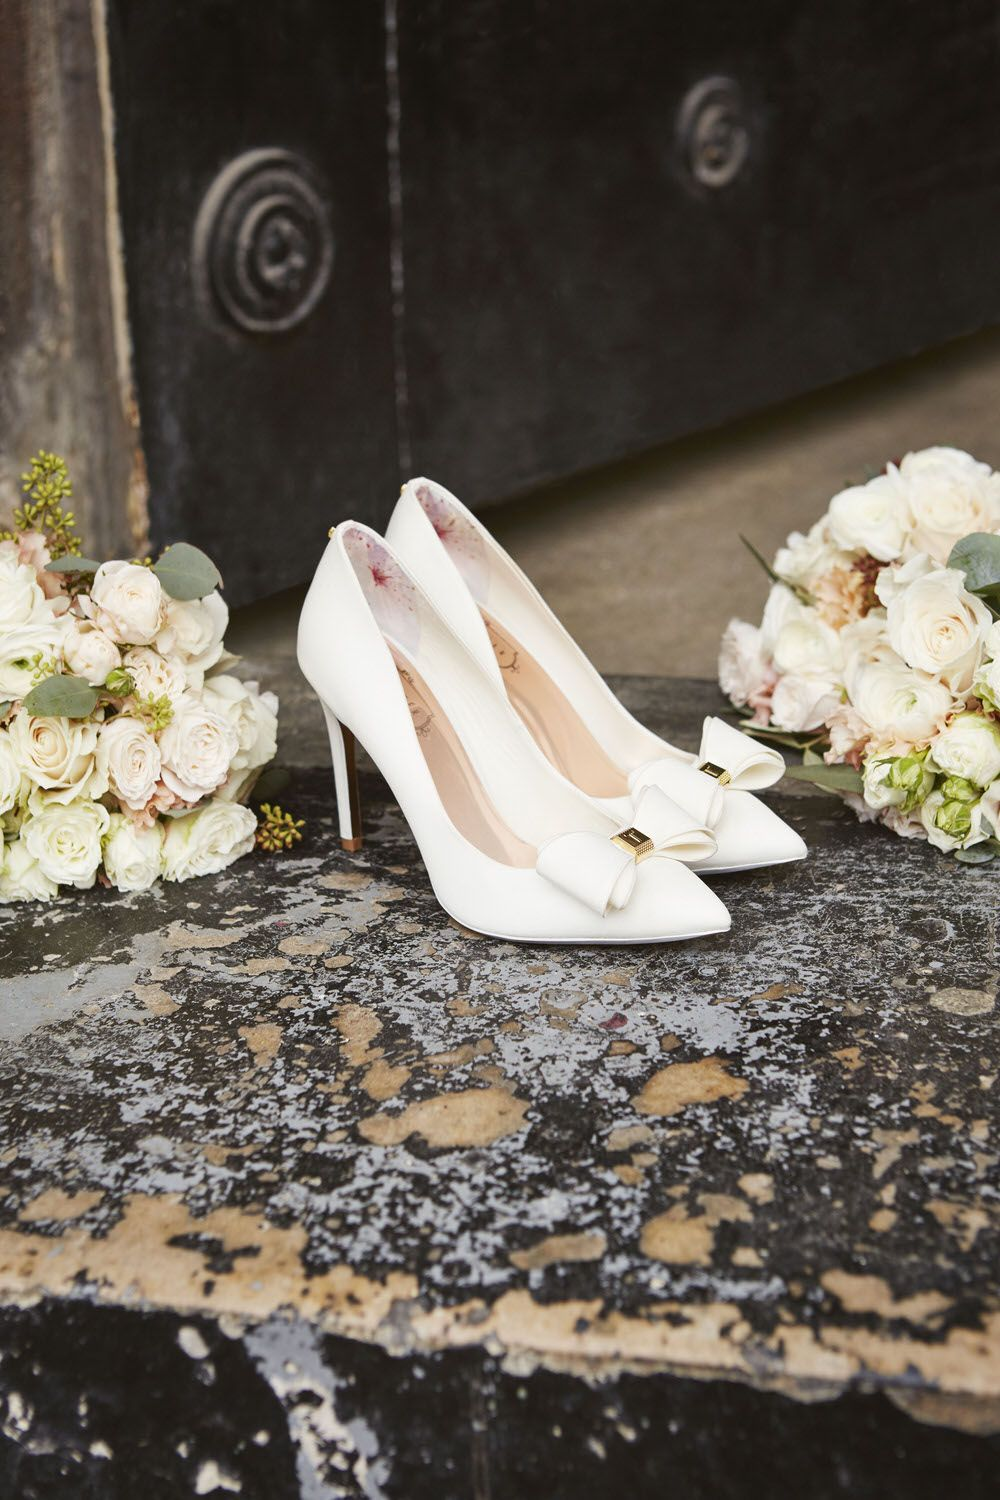 purchase cheap 2a12c 55c6d Ted Baker Wedding Shoes from@tedbaker #WedWithTed contest ...